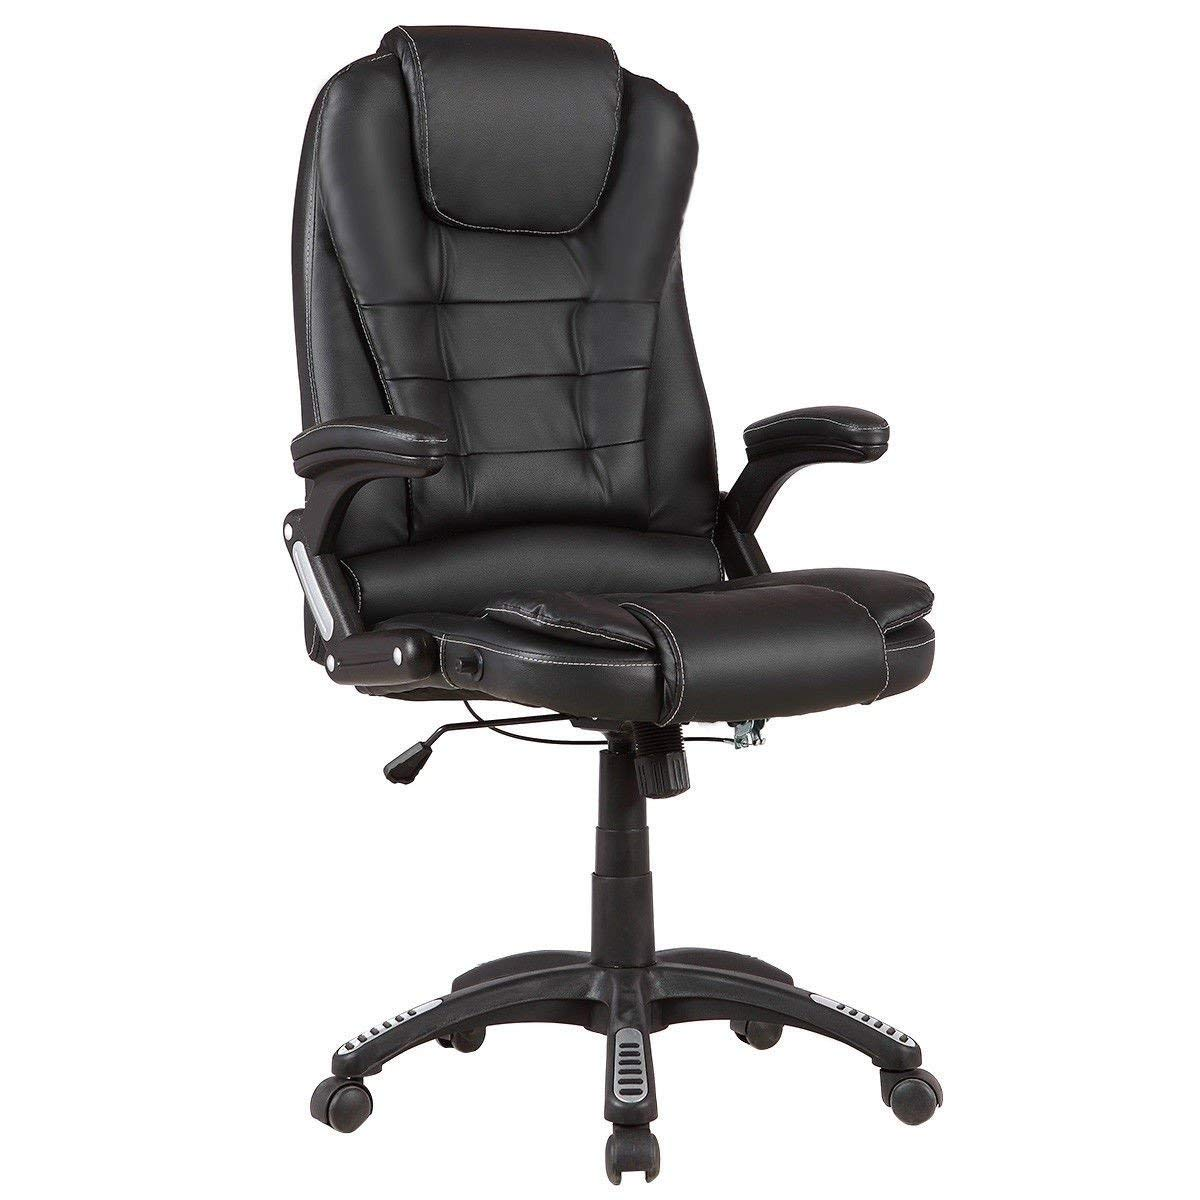 Svitlife Executive High Back Recliner Office Chair Gaming Recliner Leather Footrest